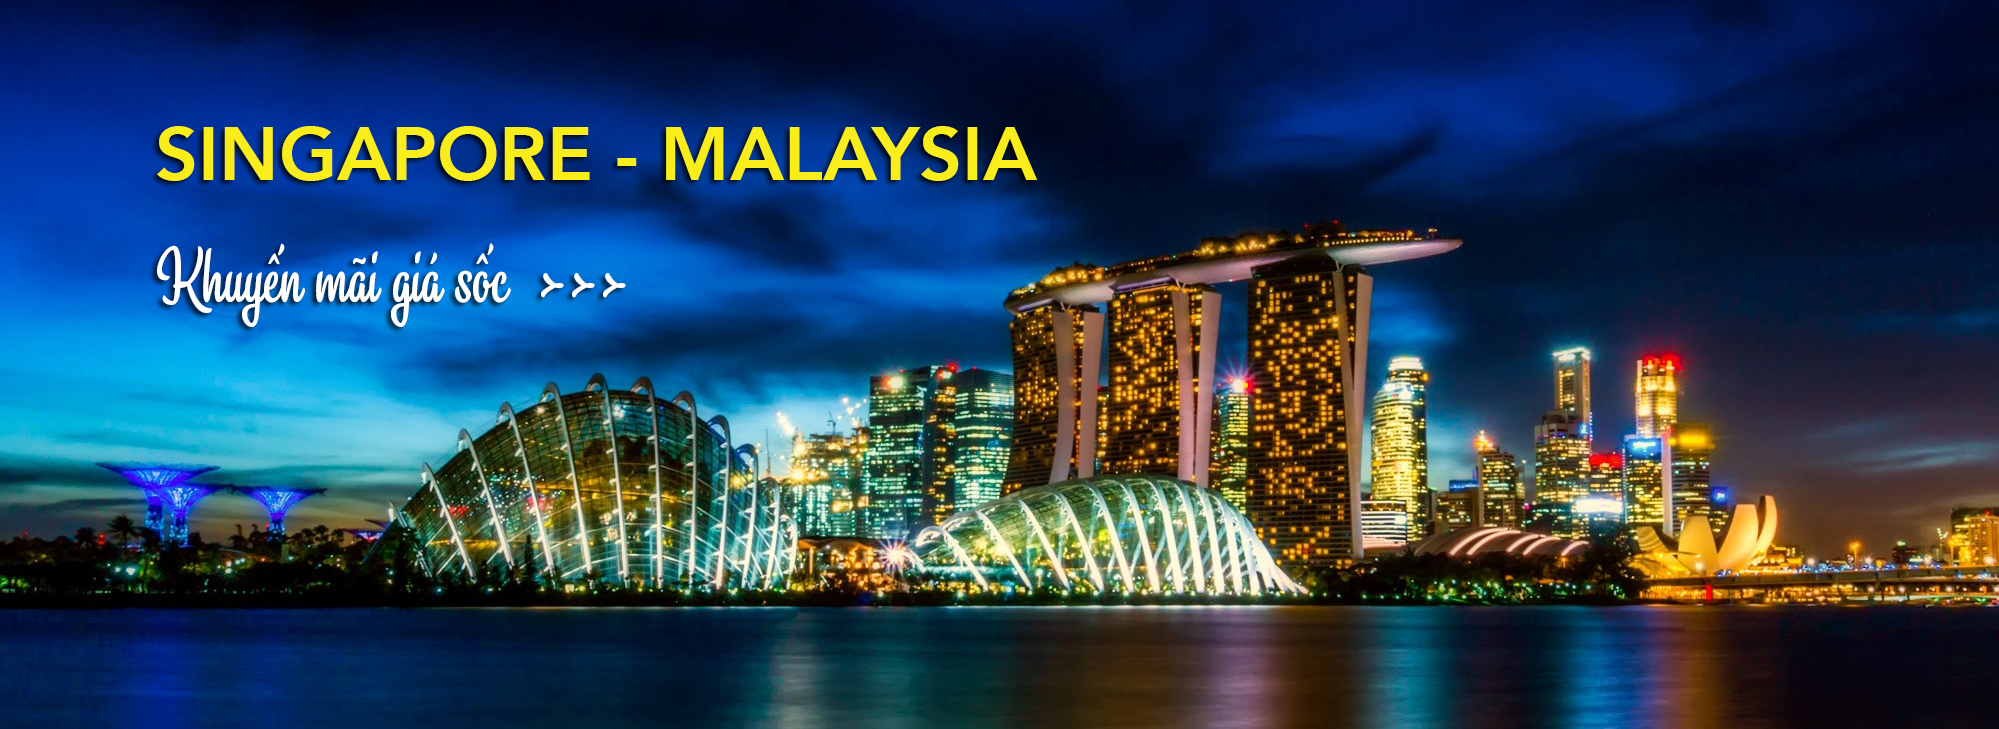 Tour Singapore Malaysia